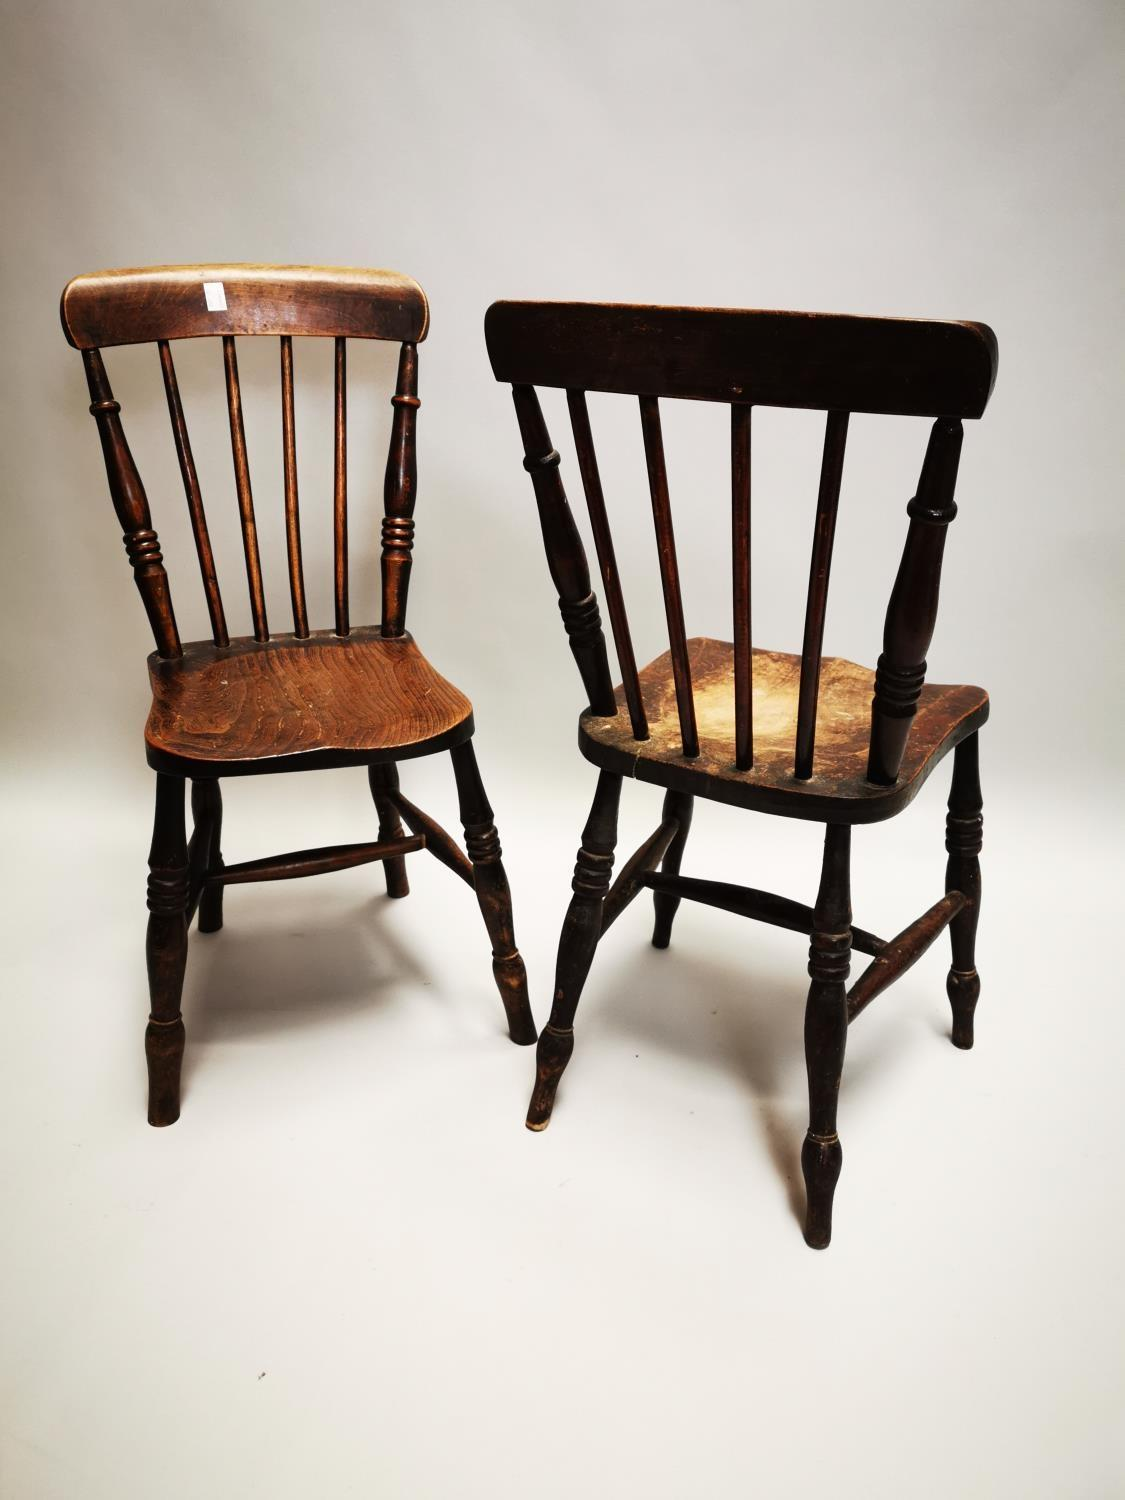 Pair of 19th C. pine and elm kitchen chairs - Image 8 of 8